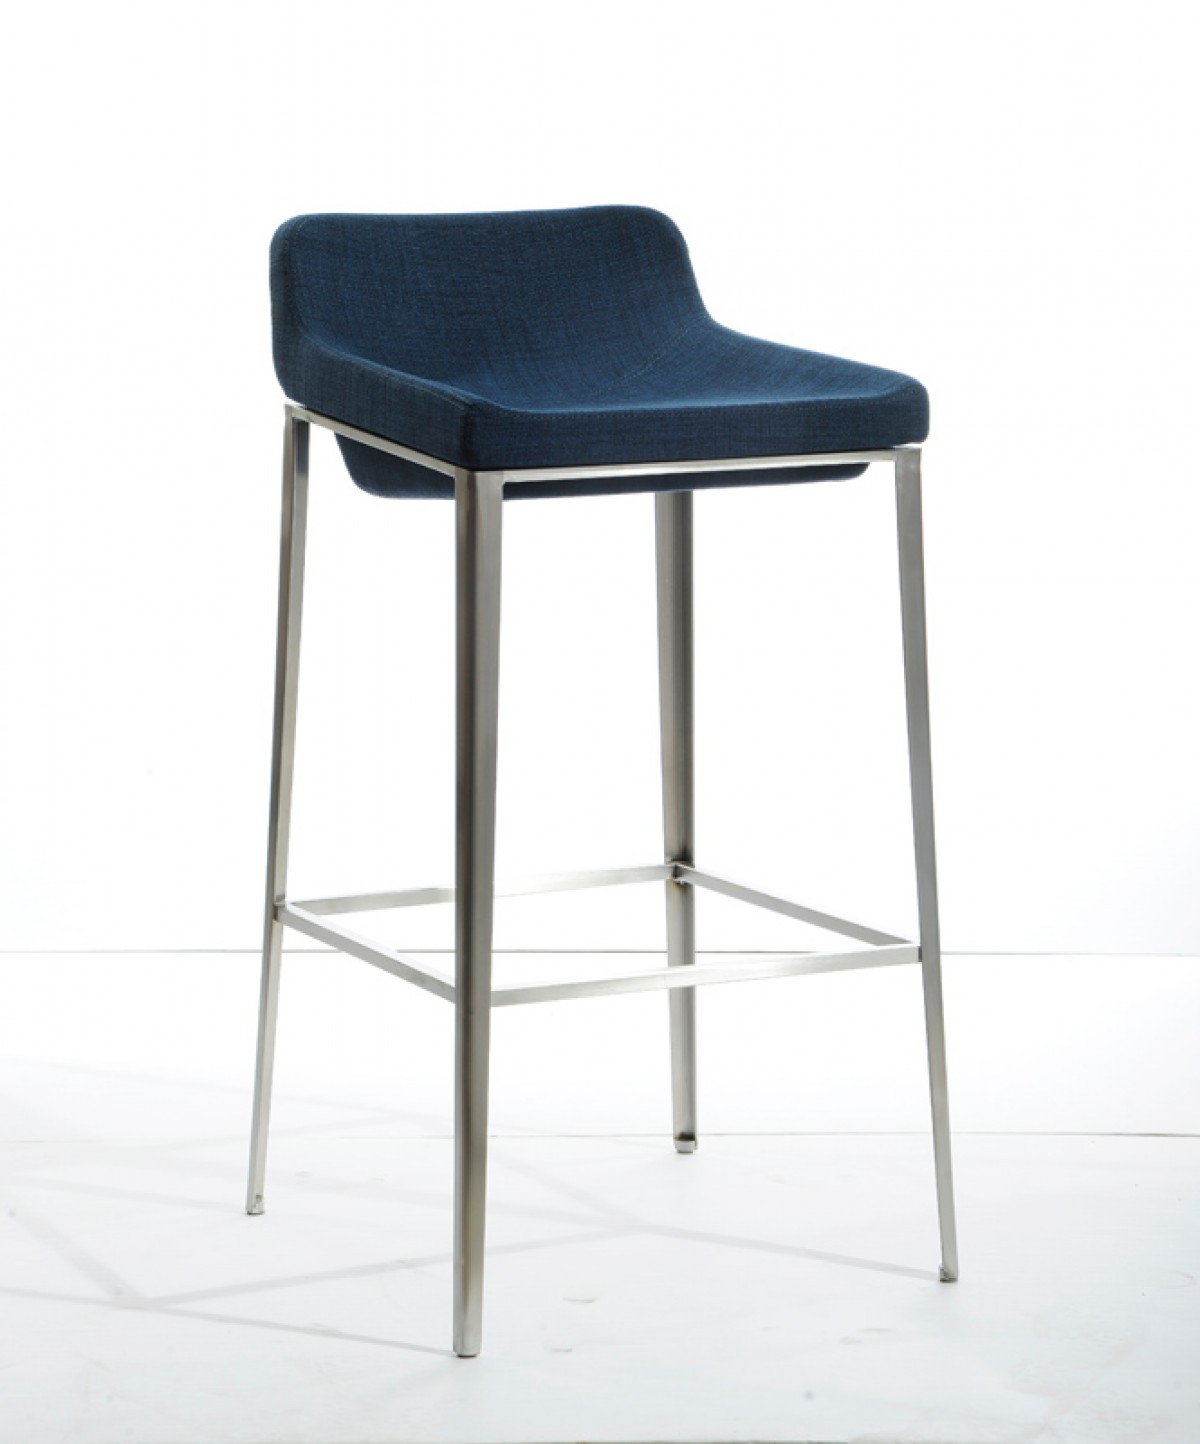 Modrest Adhil Modern Blue Fabric Bar Stool Bar Lounge  : a105 df5 blue from www.vigfurniture.com size 1200 x 1444 jpeg 107kB